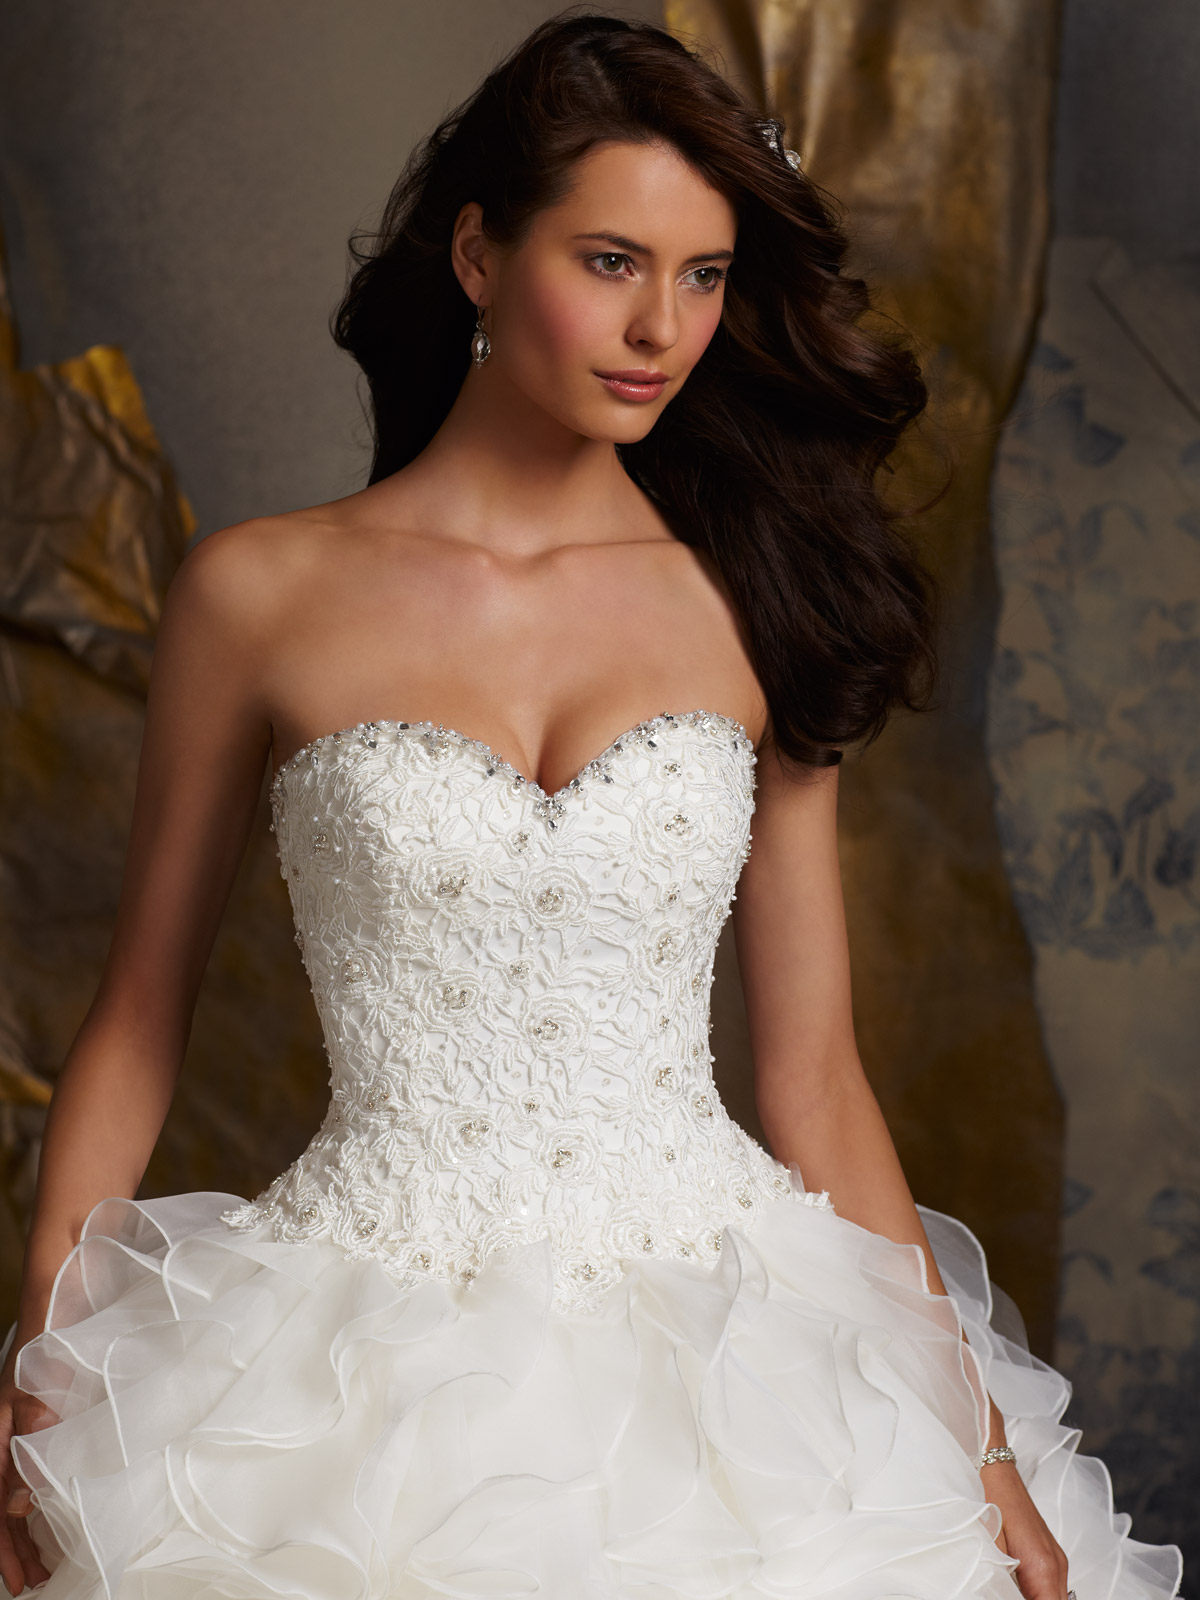 Janice Sung Wedding Sweetheart Crystal Beaded Lace And Beaded Bridal Gown